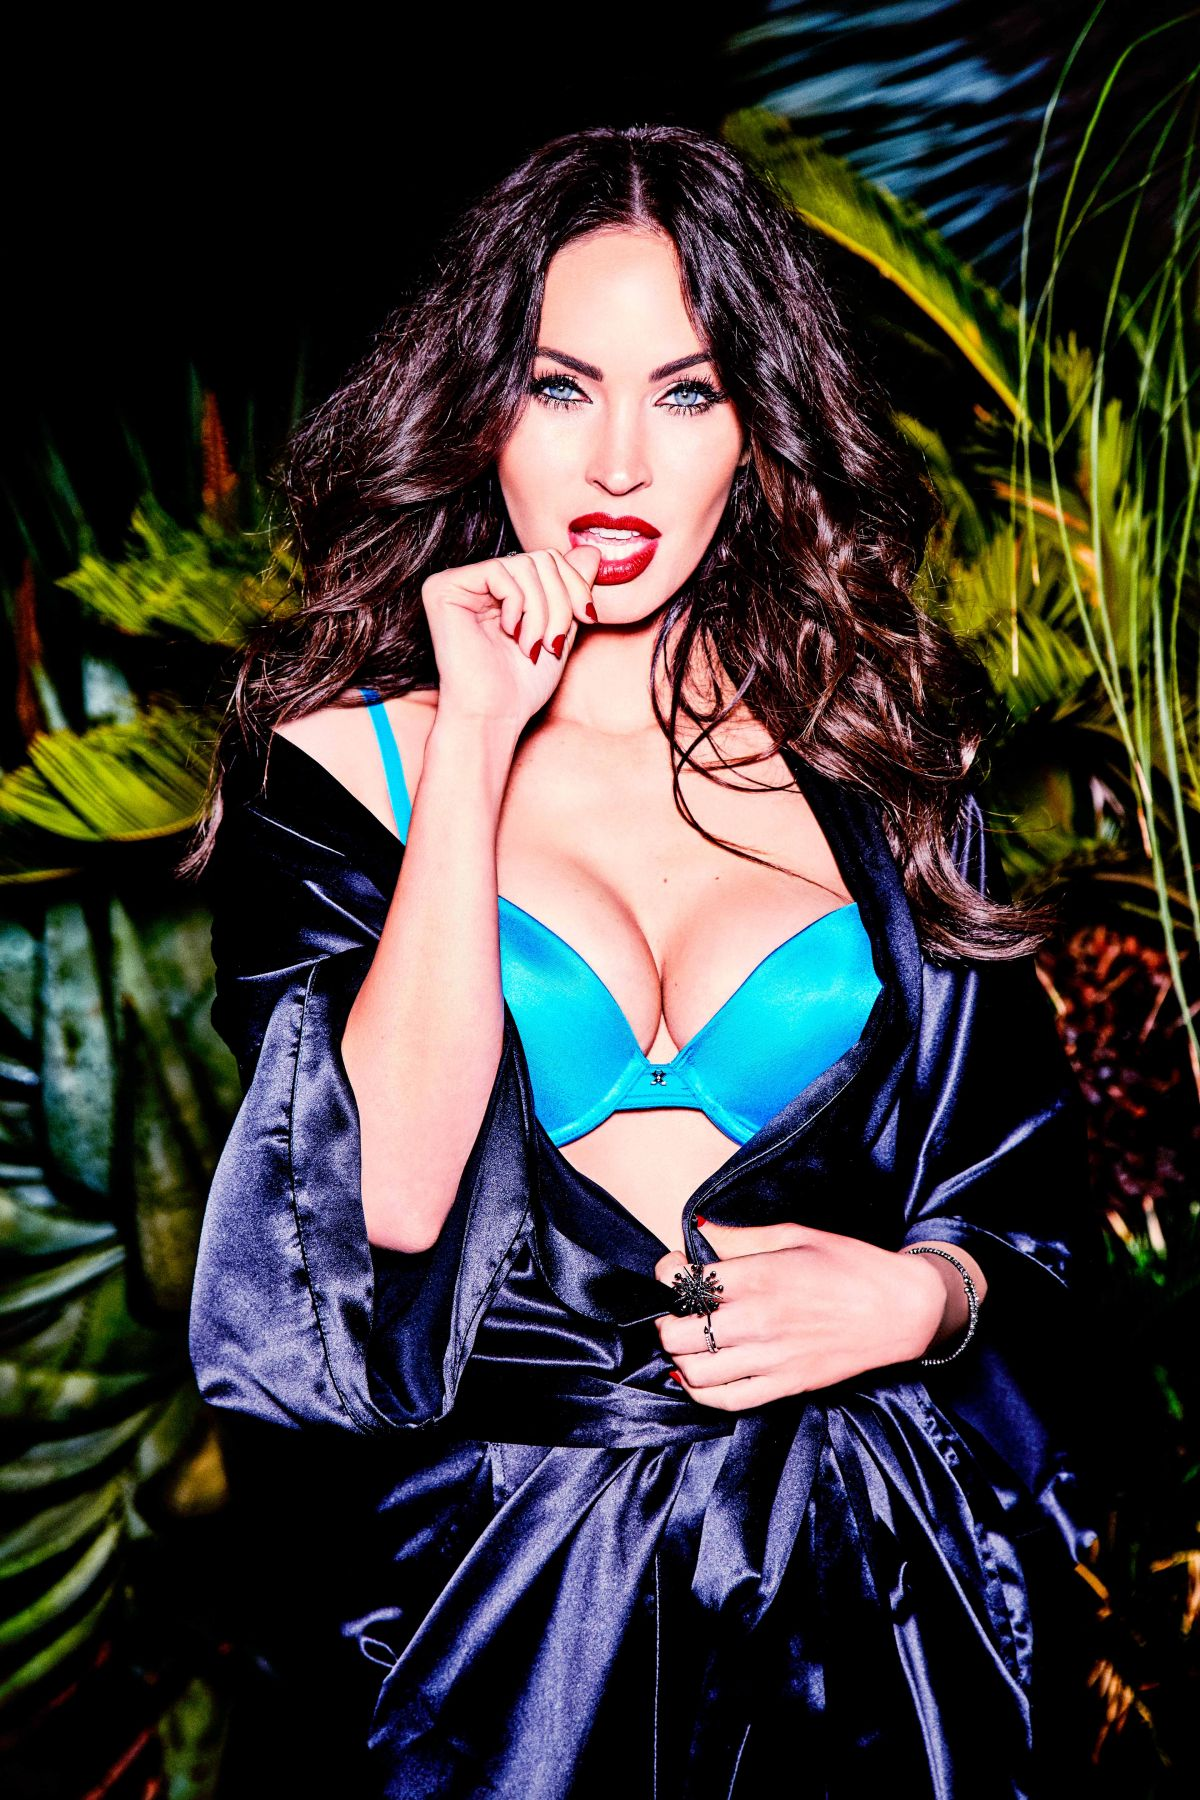 Megan Fox Hot Bikini Photos, Leaked Hd Images